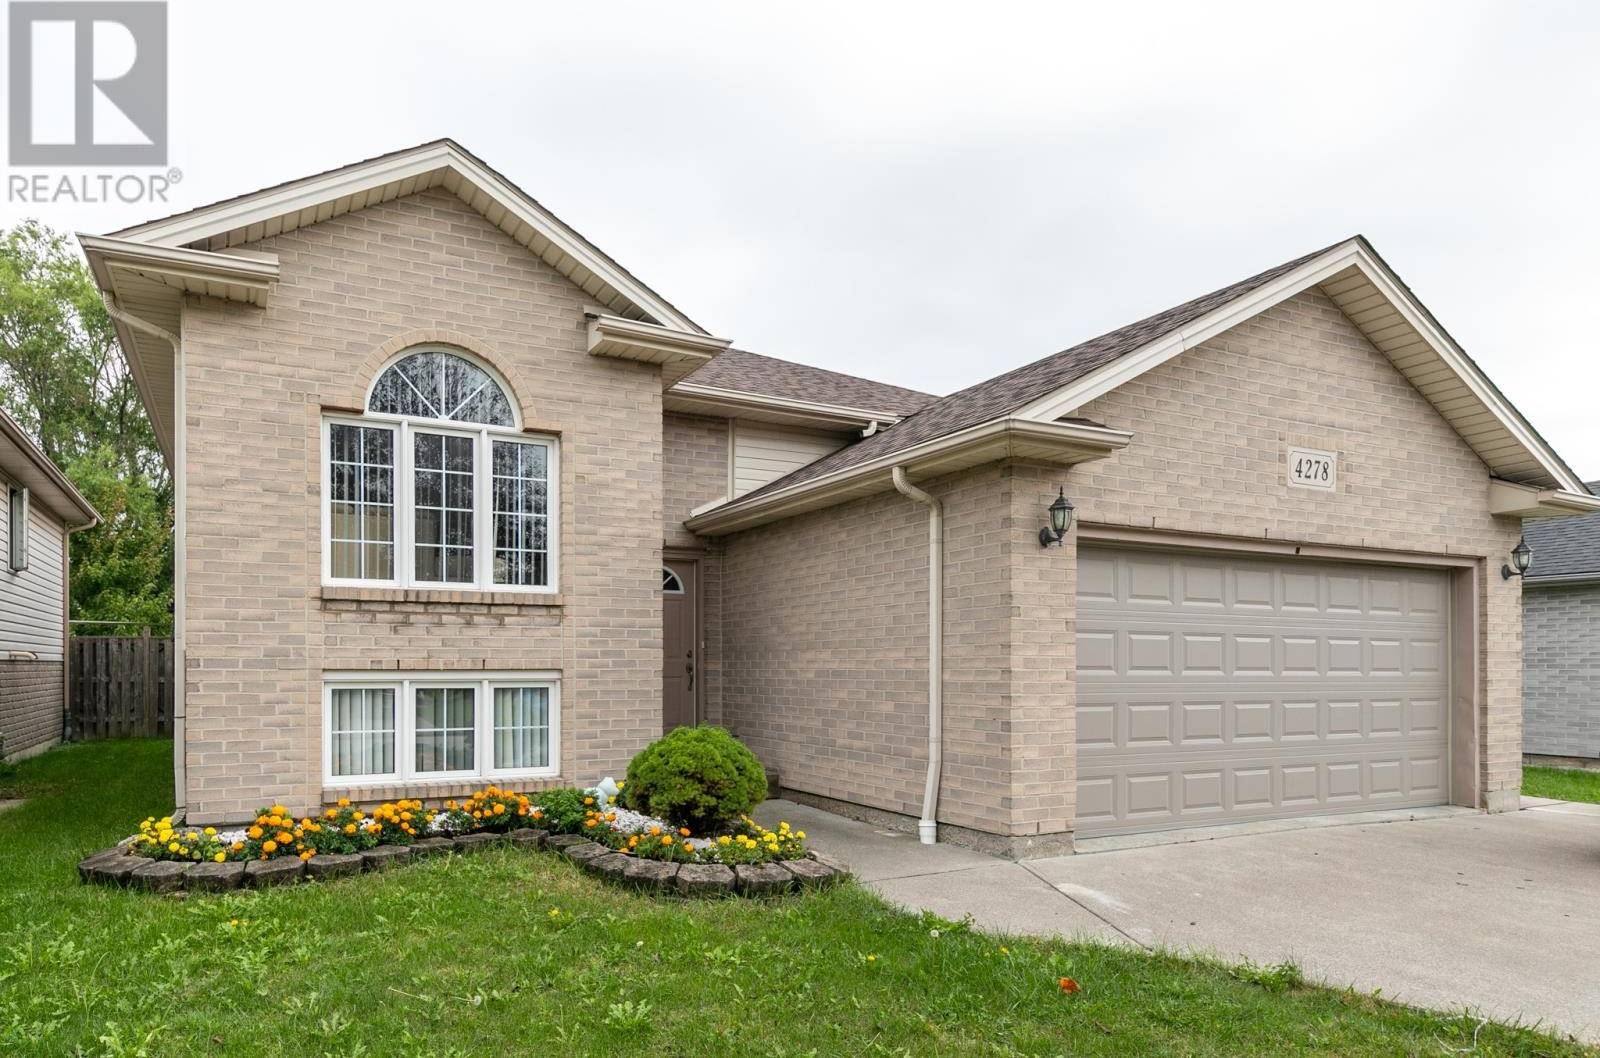 House for sale at 4278 Sharon Ave Windsor Ontario - MLS: 19026544